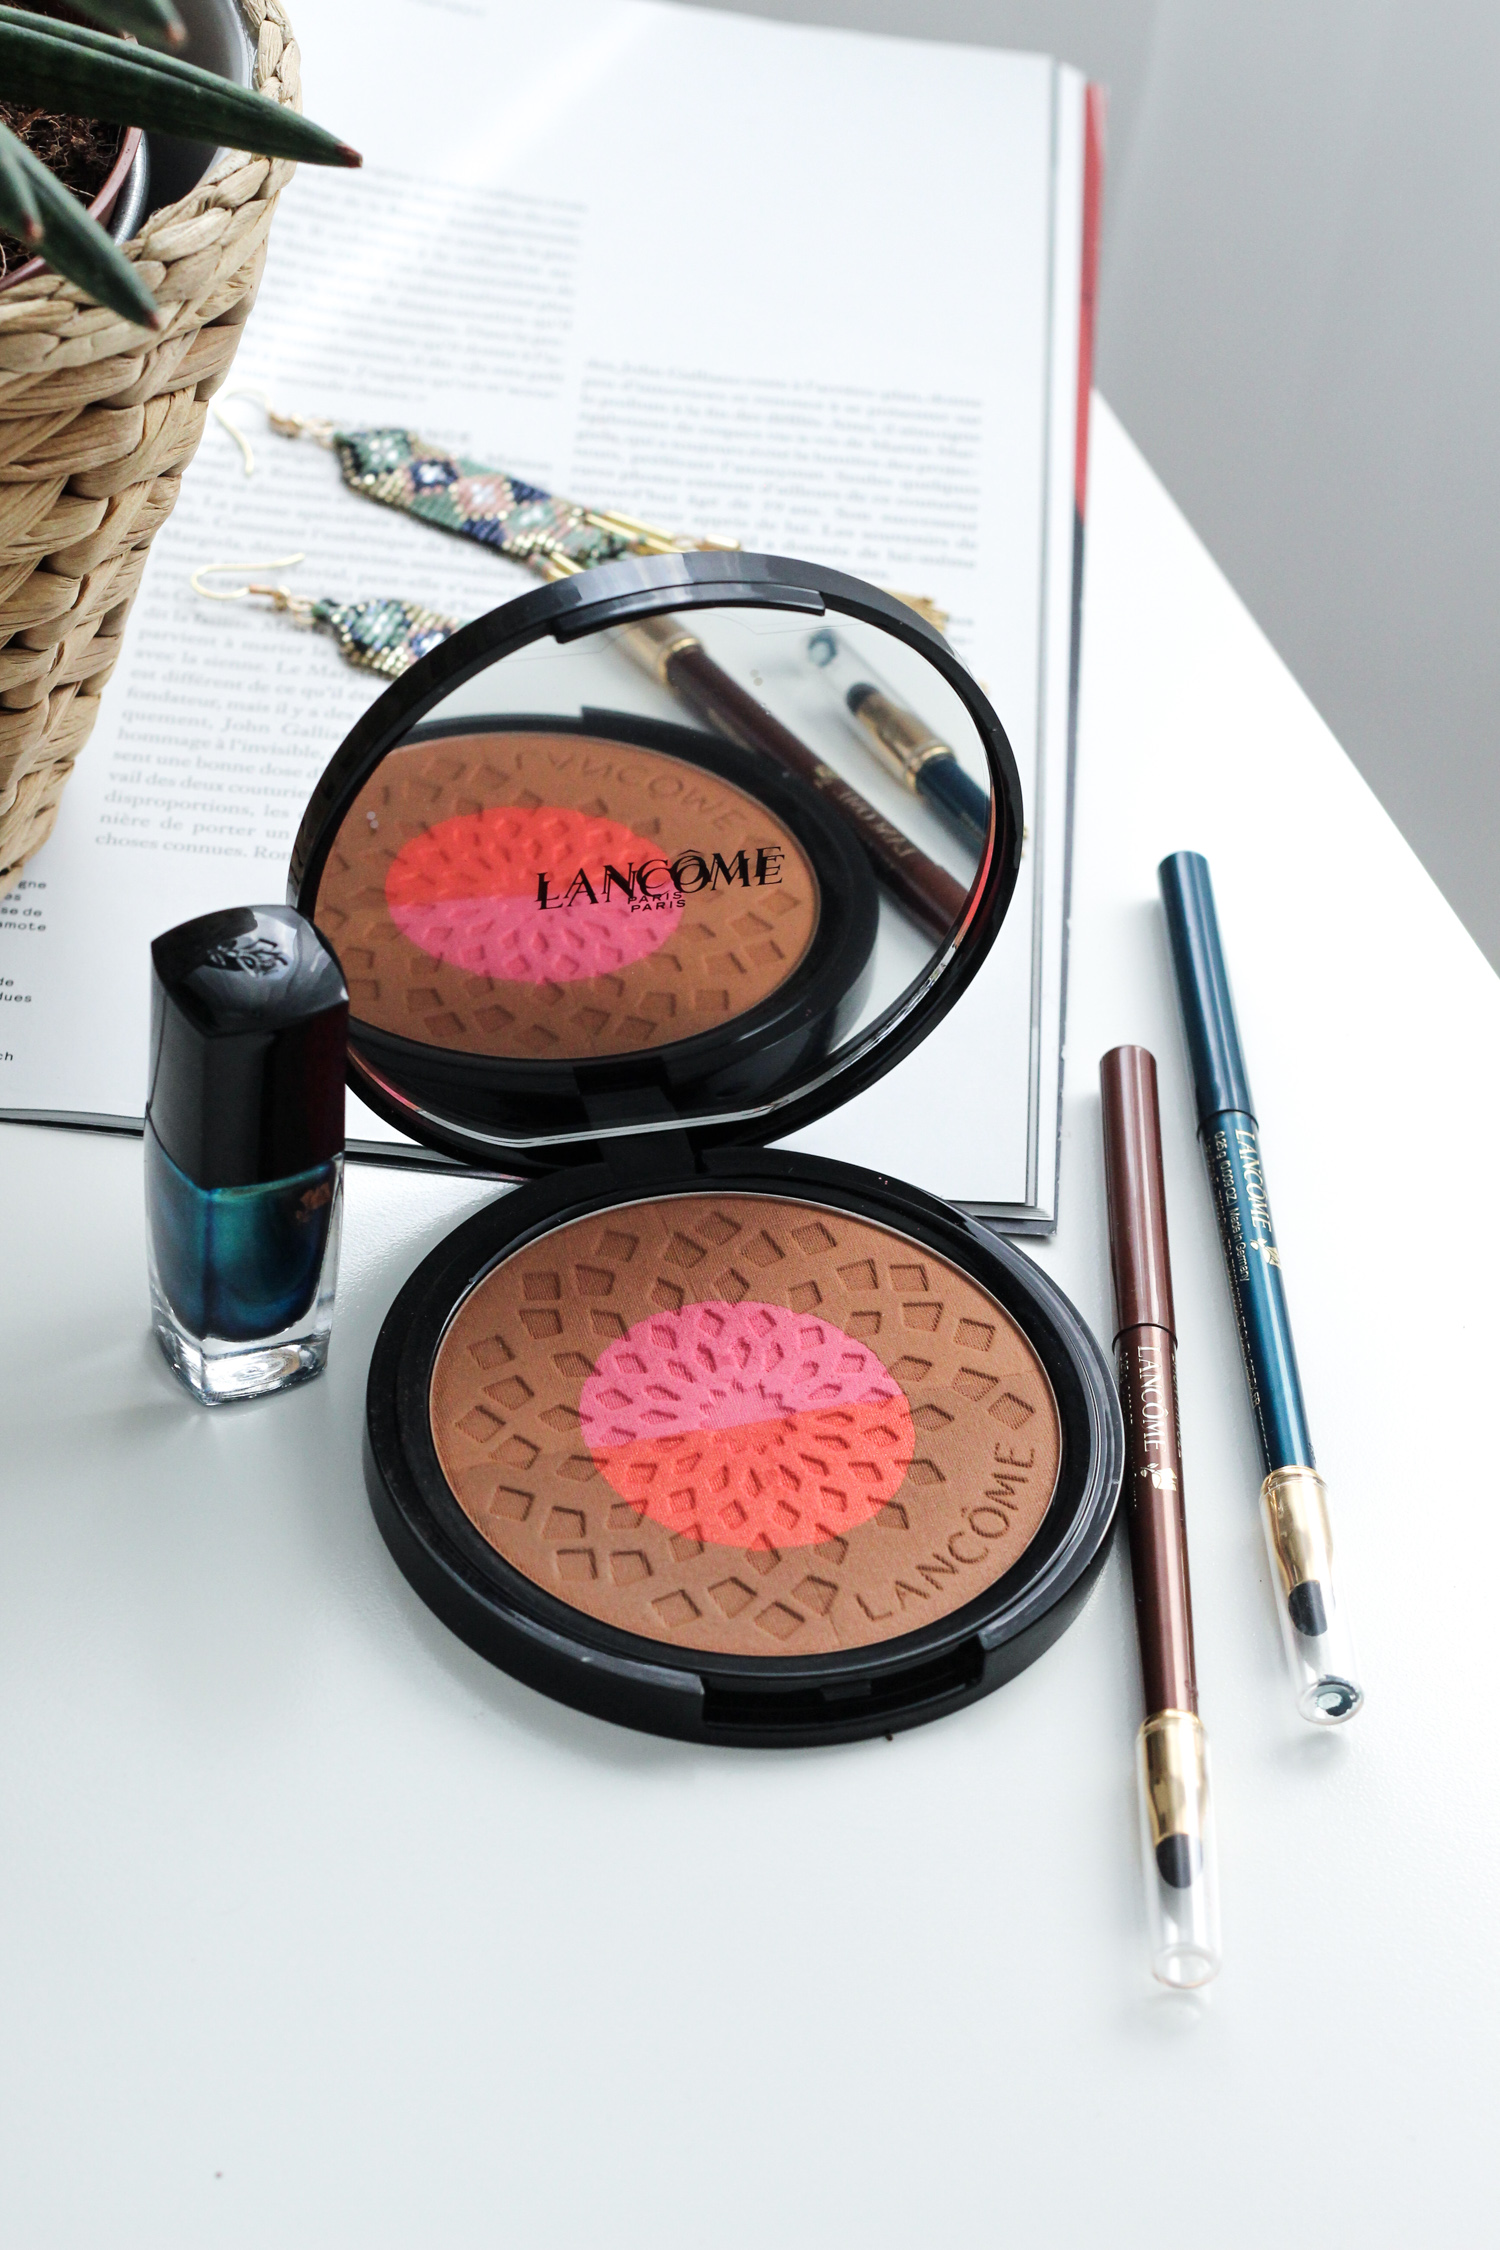 Lancôme_Monaco_Beach_Products-4